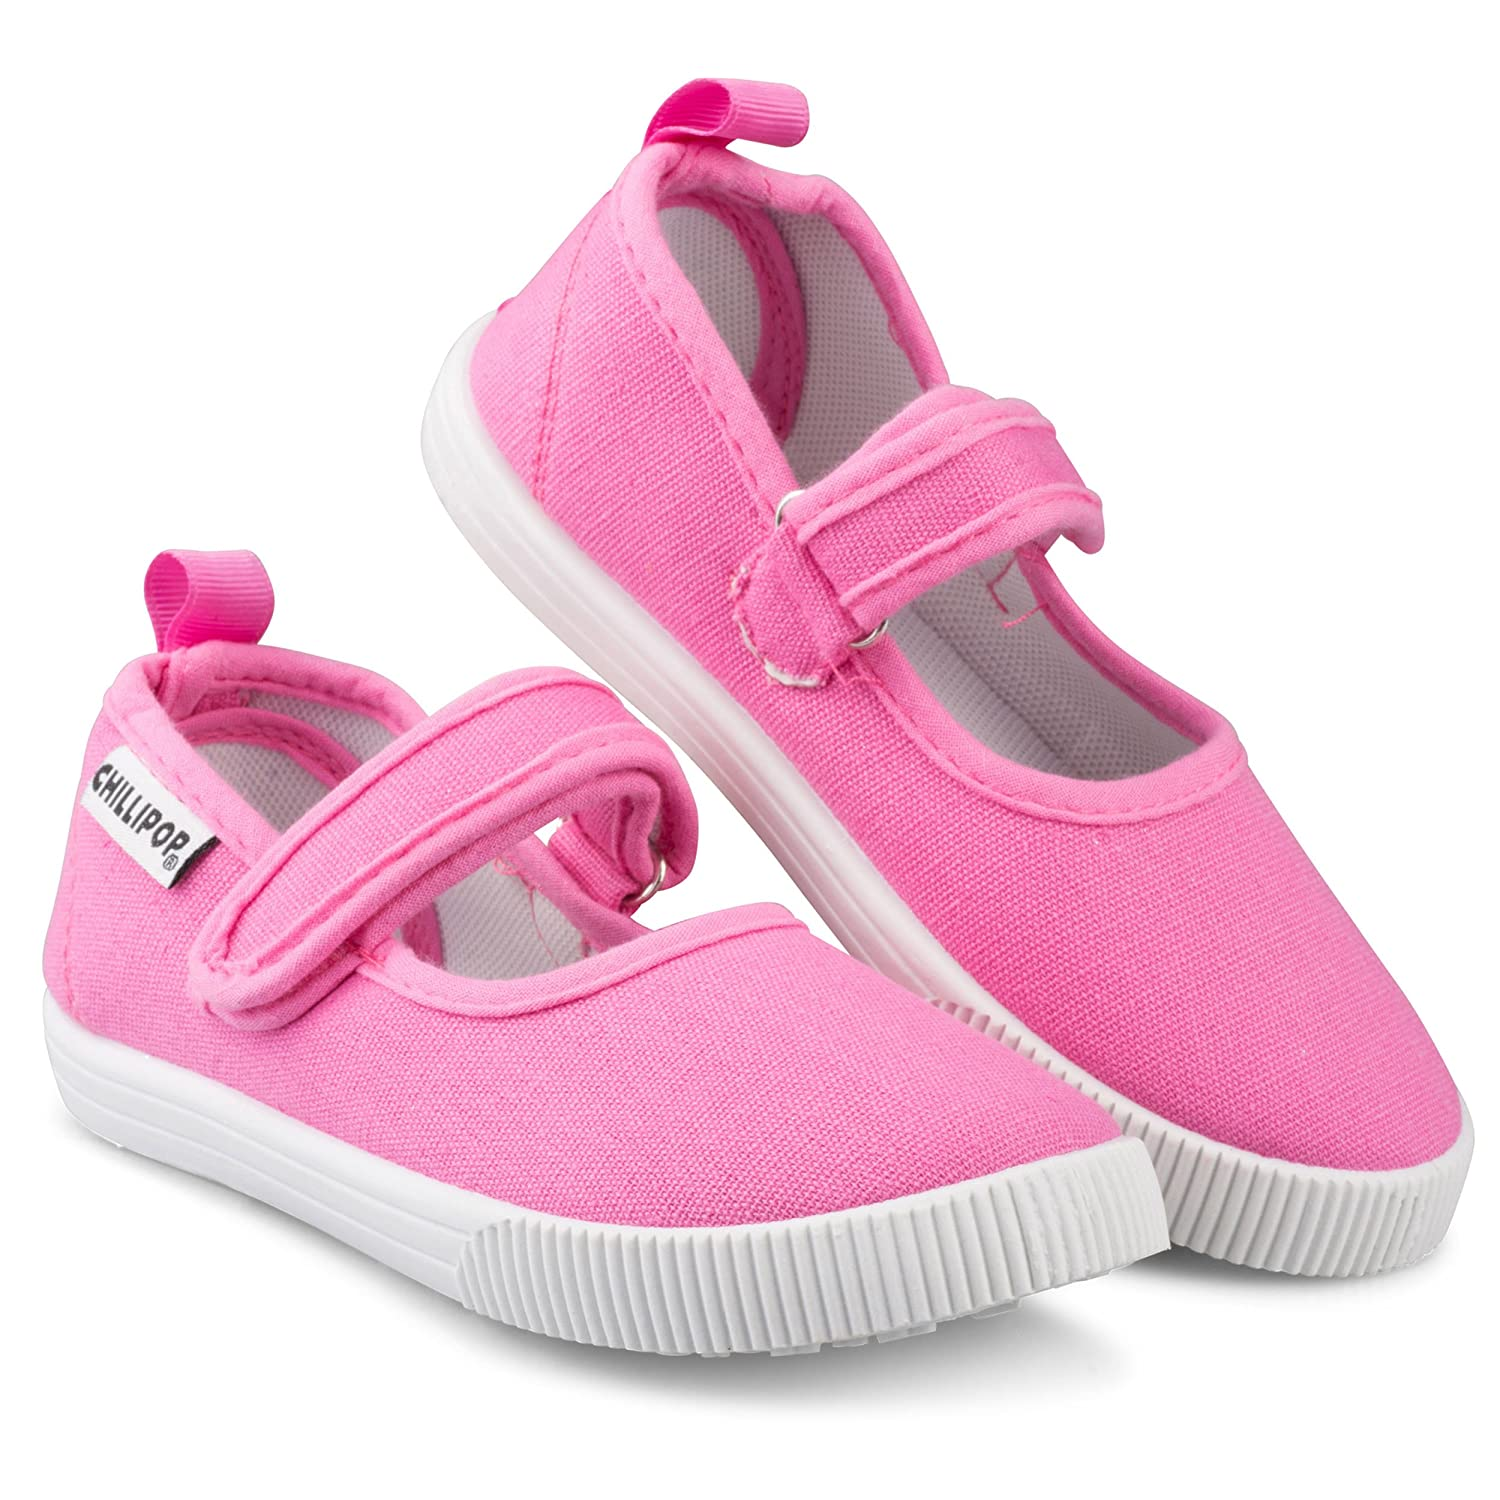 Casual Canvas Shoes Girls Mary Jane Sneakers Toddler Sizes 5-10 Easy Close